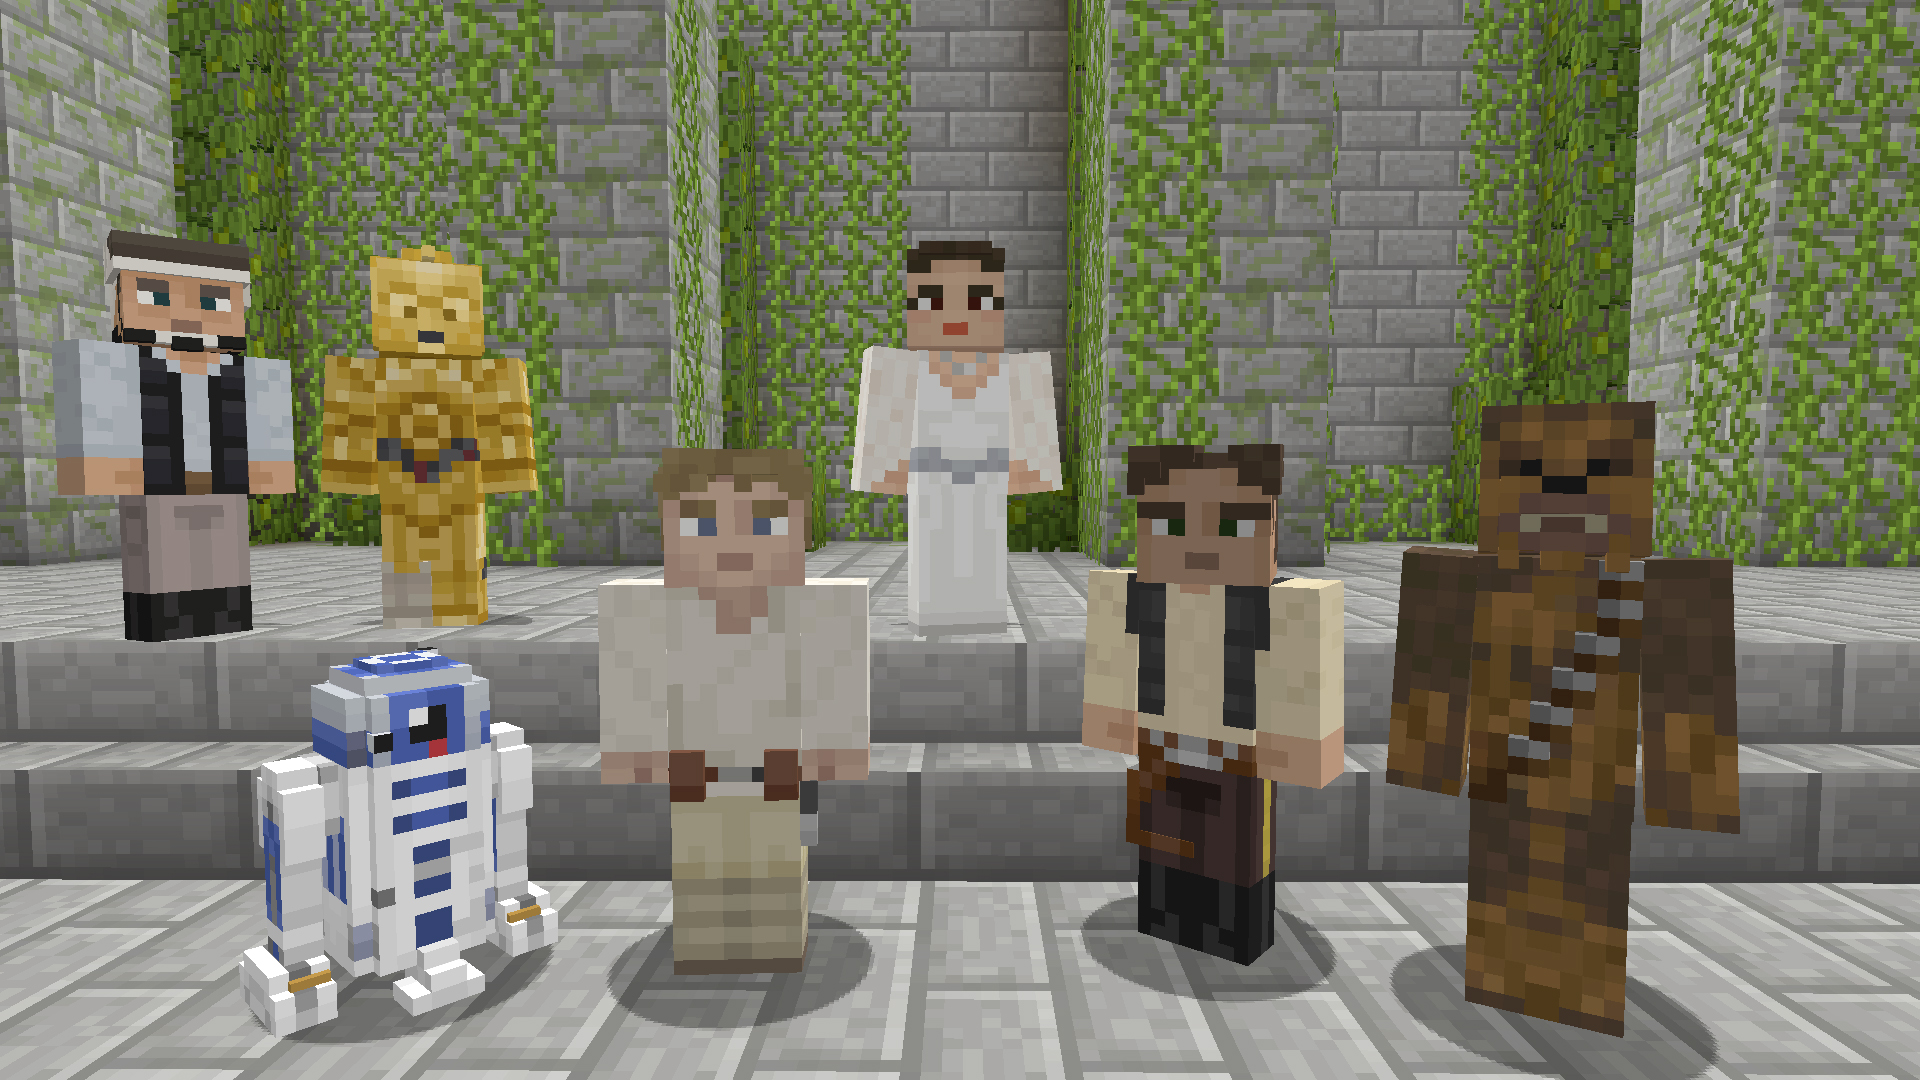 Star Wars comes to Minecraft on Xbox